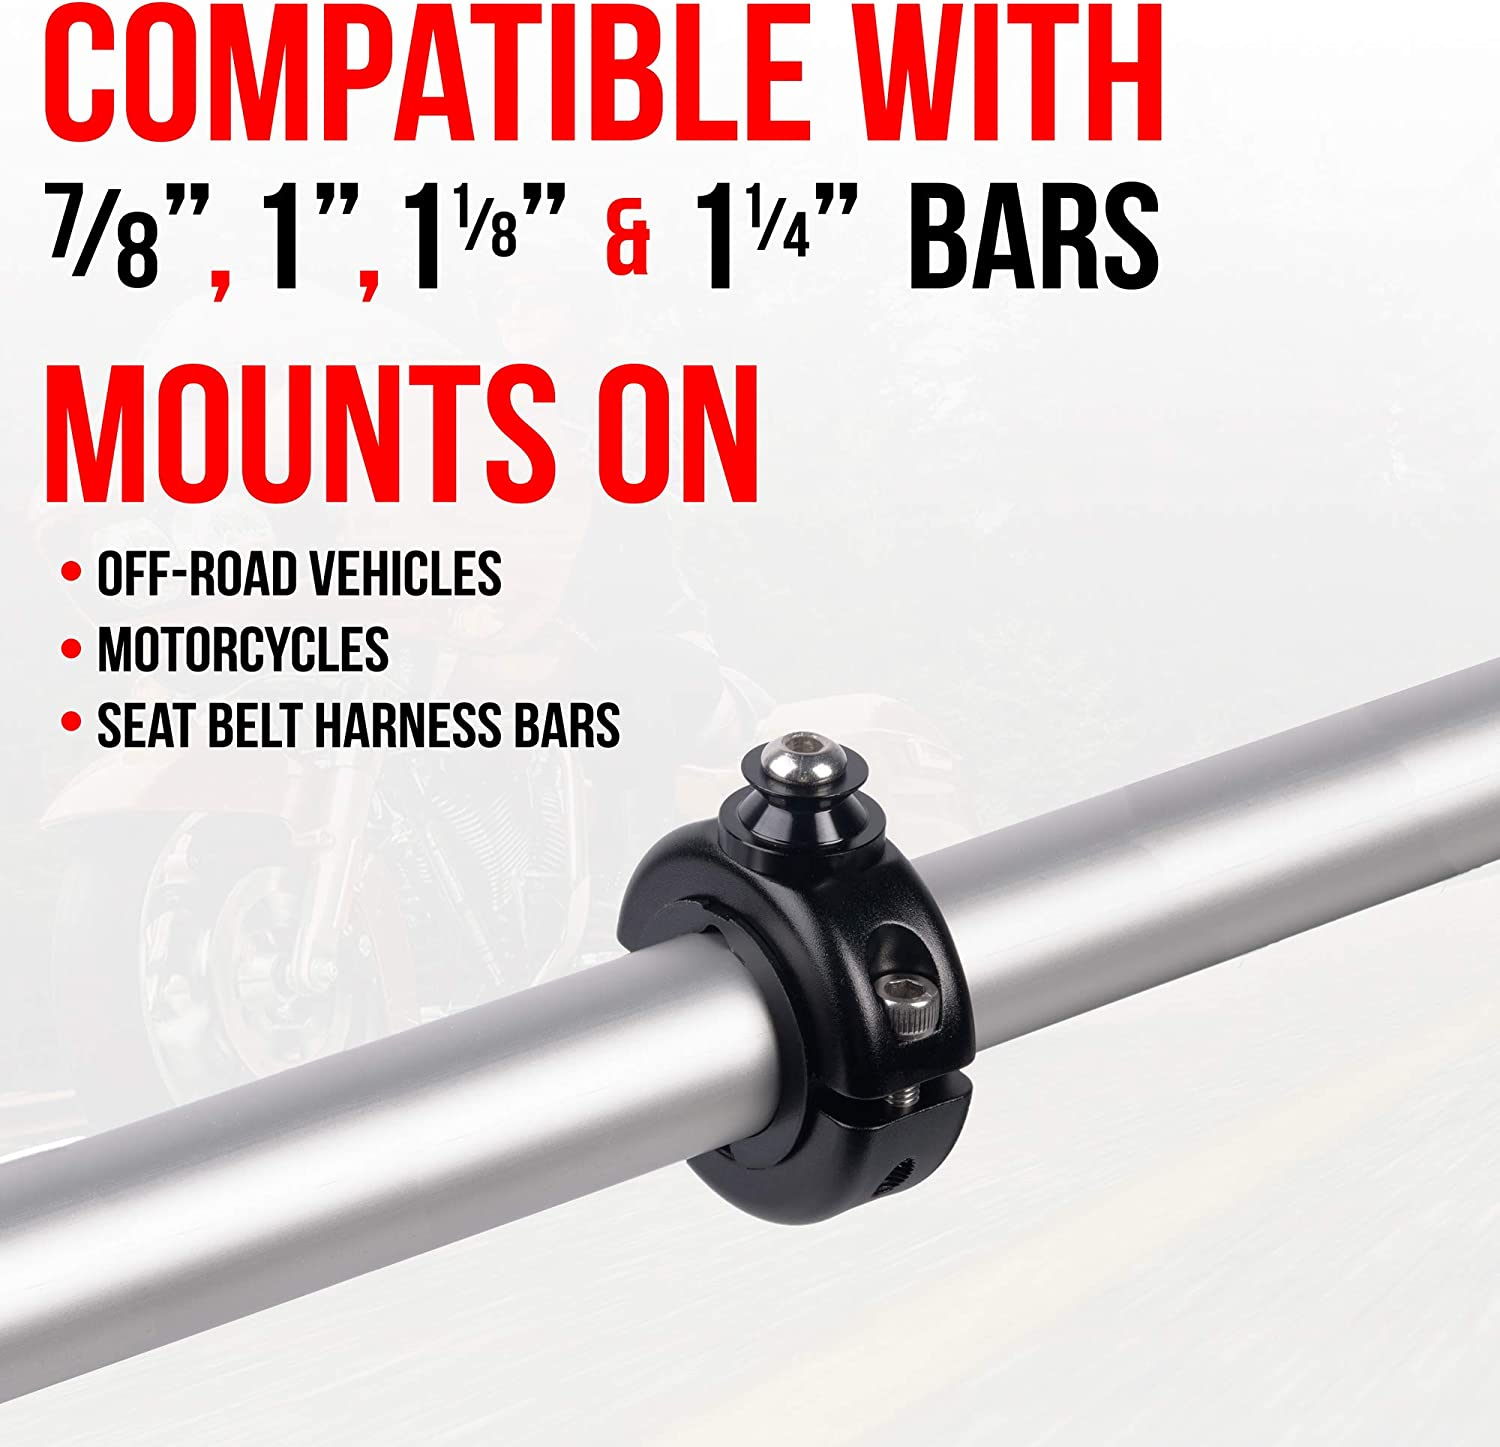 All Metal Tackform Motorcycle Action Camera Mount - Built to Outlast You. Enduro Series Bar Mount and Trail Cam Compatible with GoPro and Other Action Cameras